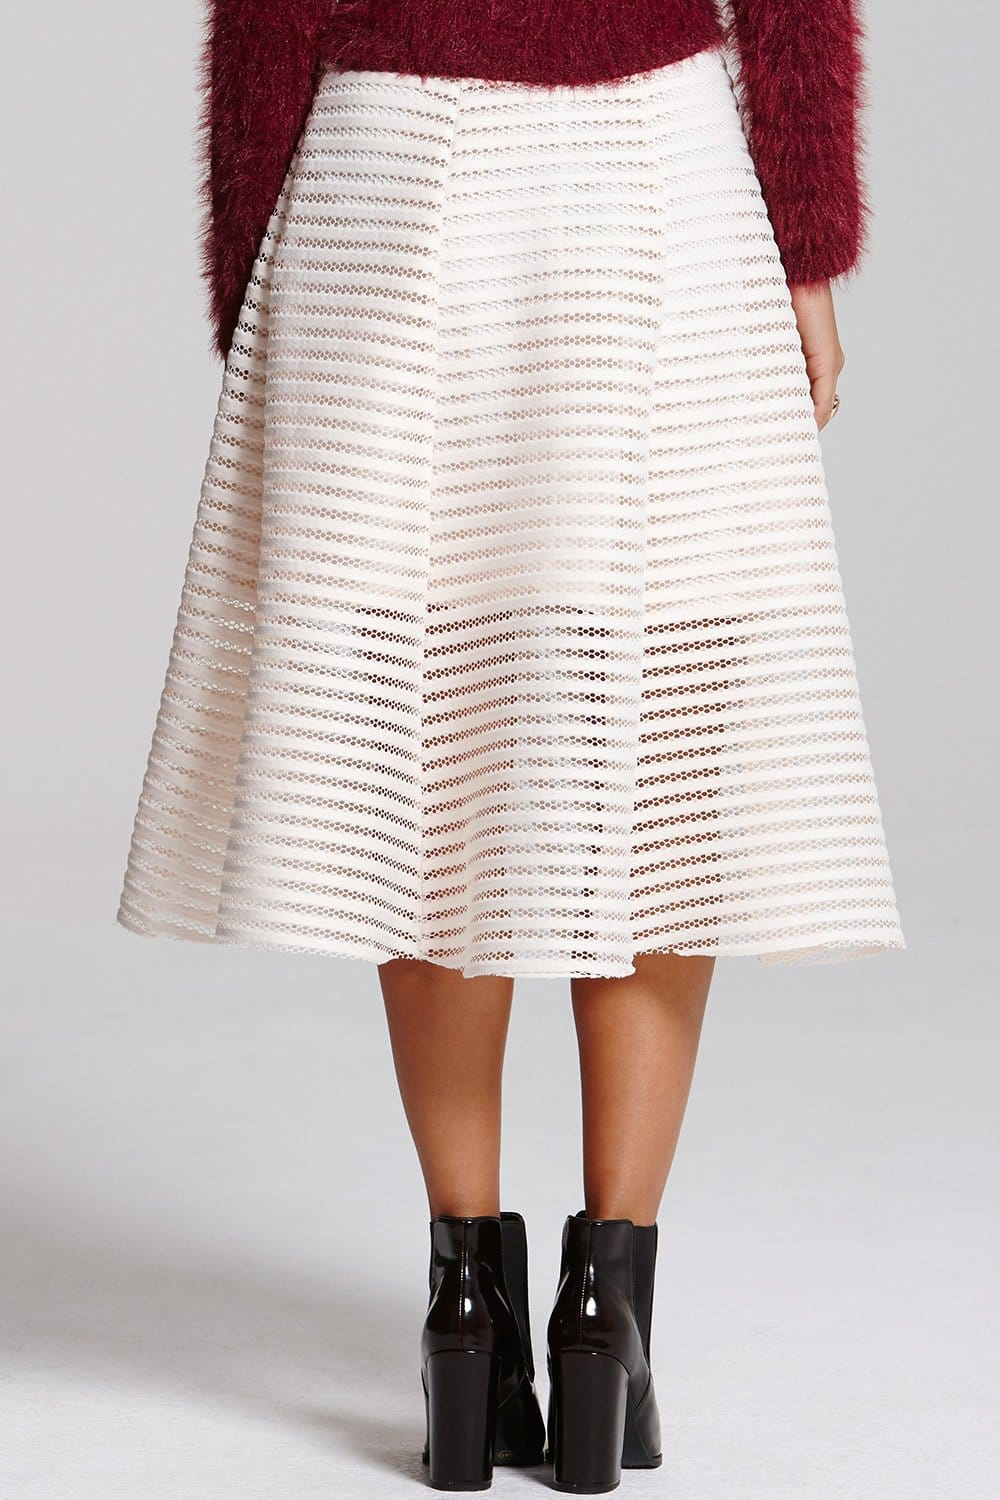 Chloe Lewis Edit Cream a-line skirt - Chloe Lewis Edit from Little ...